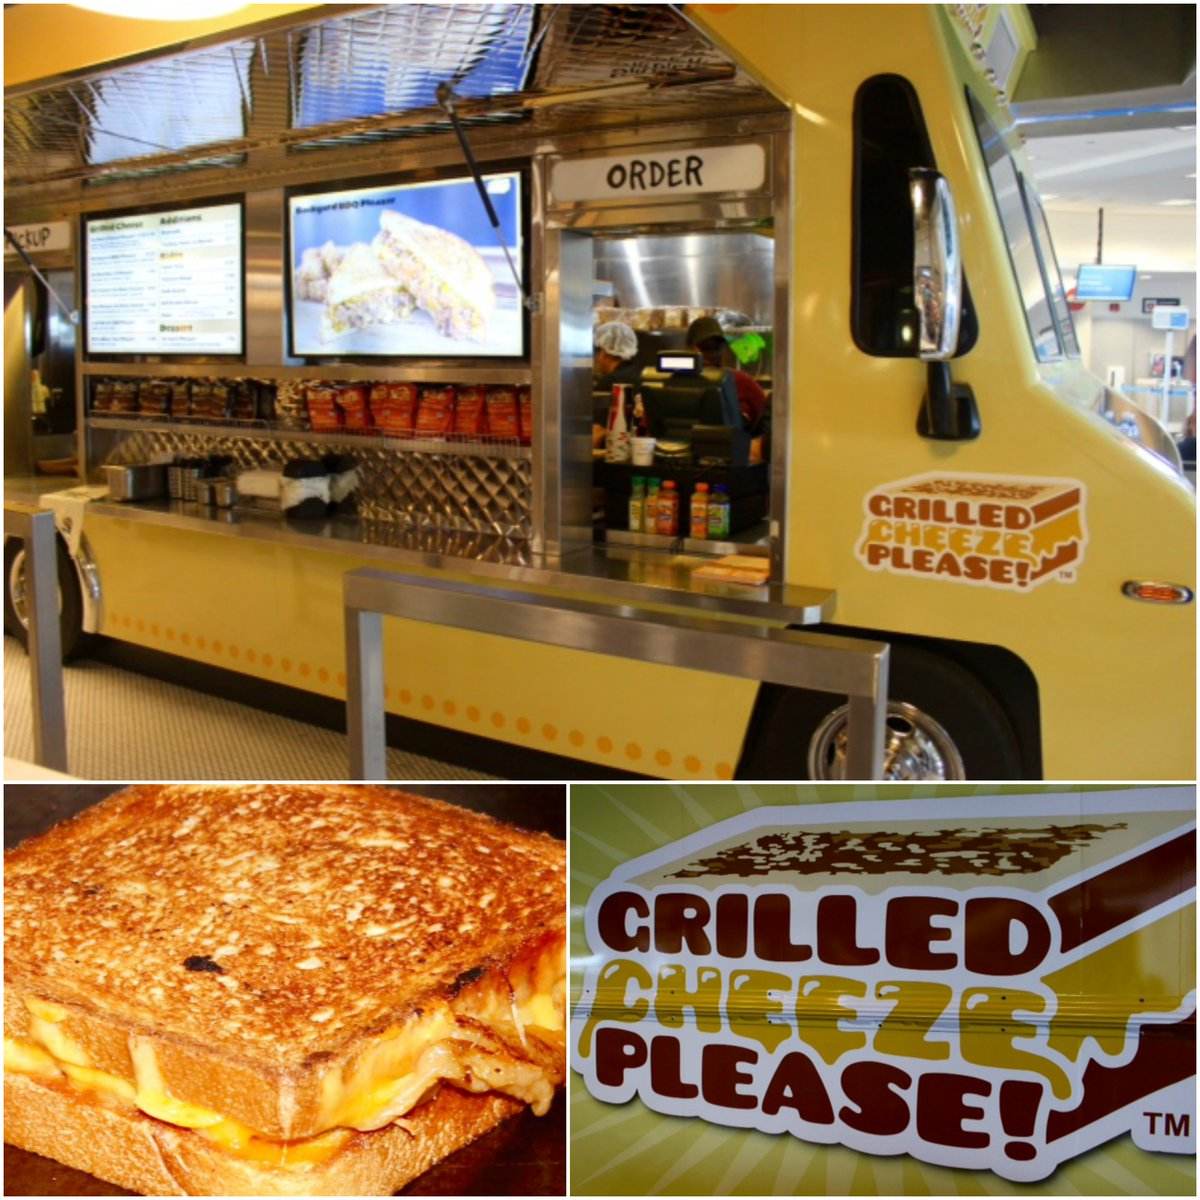 Lax airport on twitter pic can you say grilled cheese grilled cheeze please is now open in americanair t4 as part of lax food truck rotating concept